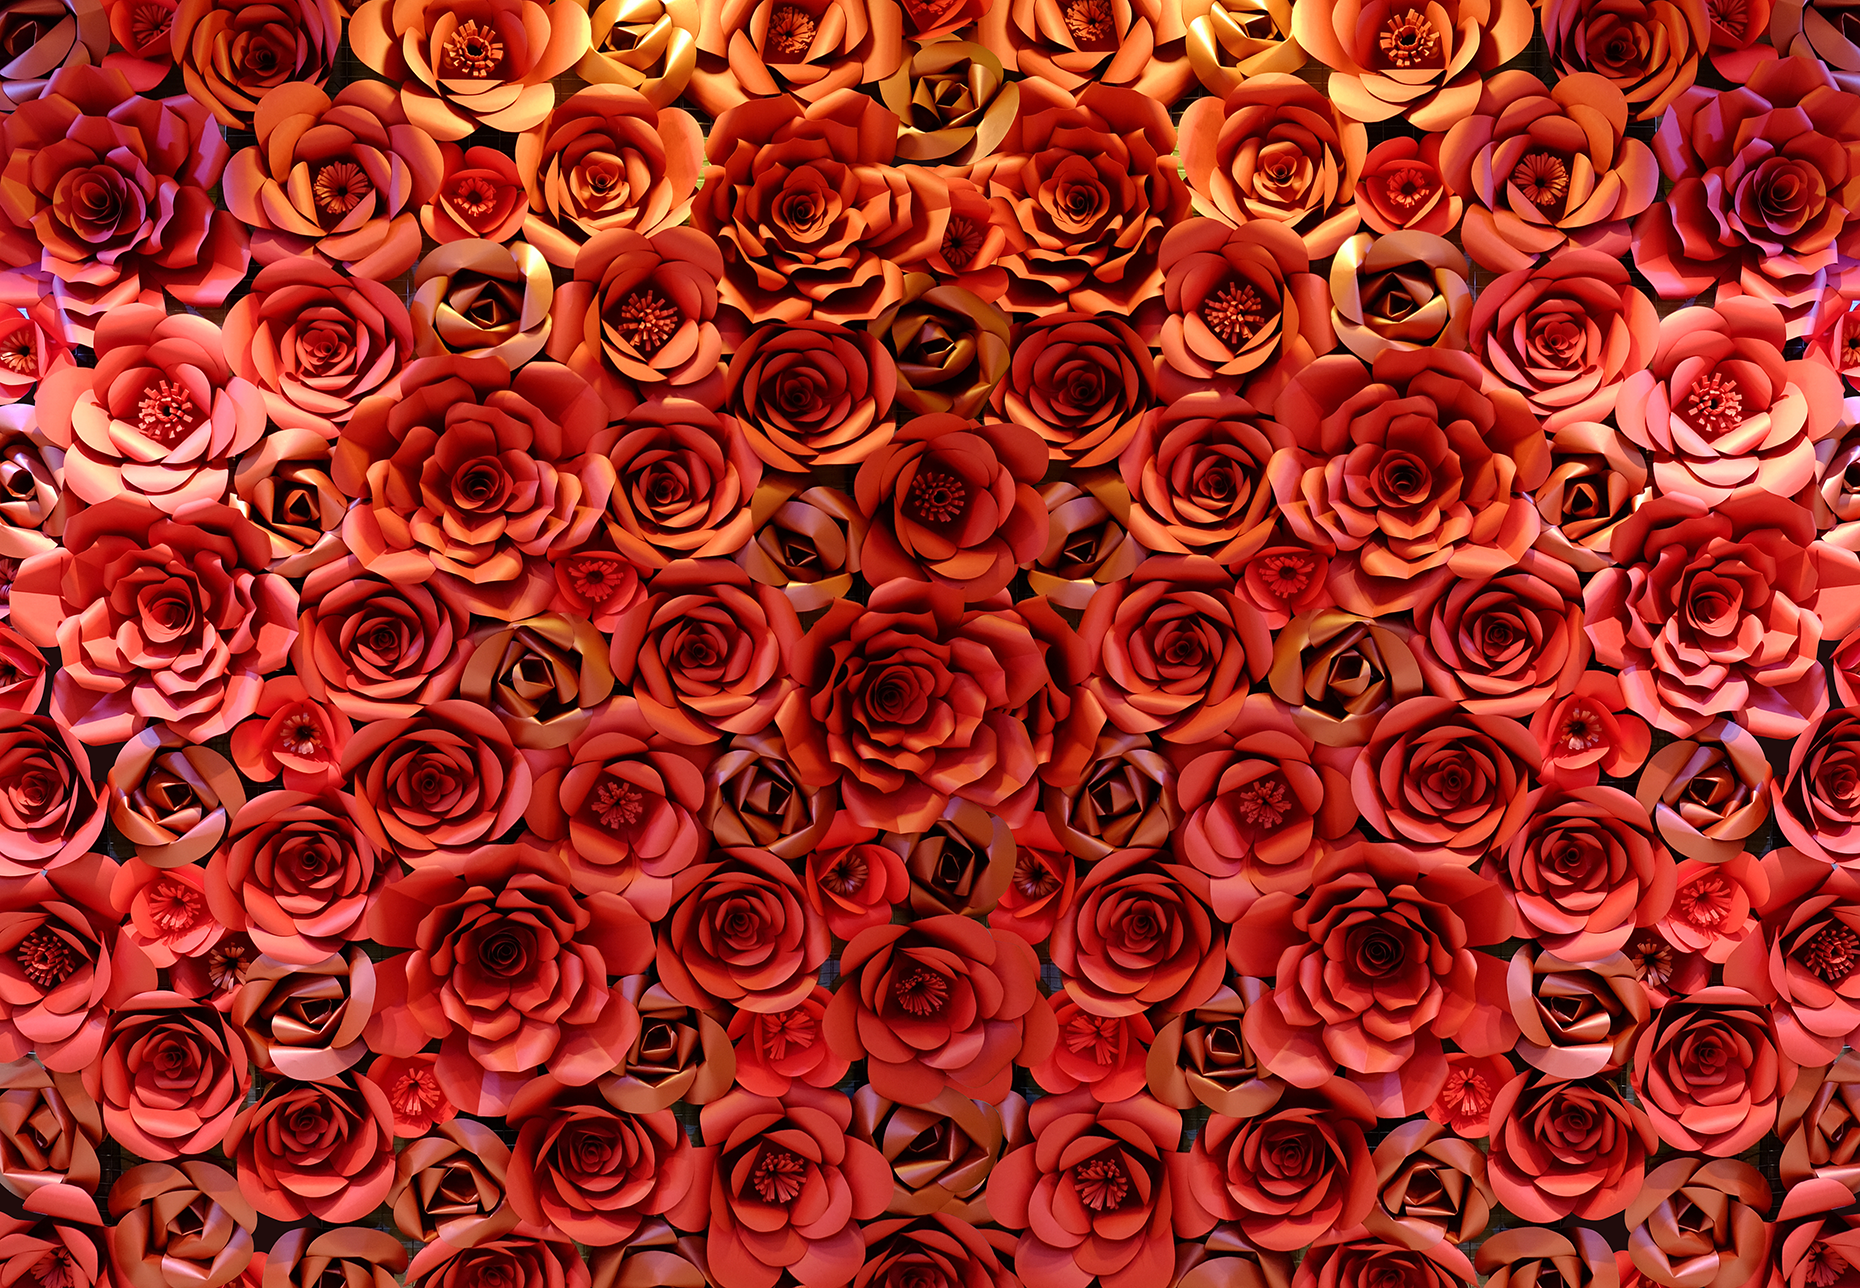 Craft dcor giant red paper flowers backdrop hweh arts giant red paper flowers backdrop mightylinksfo